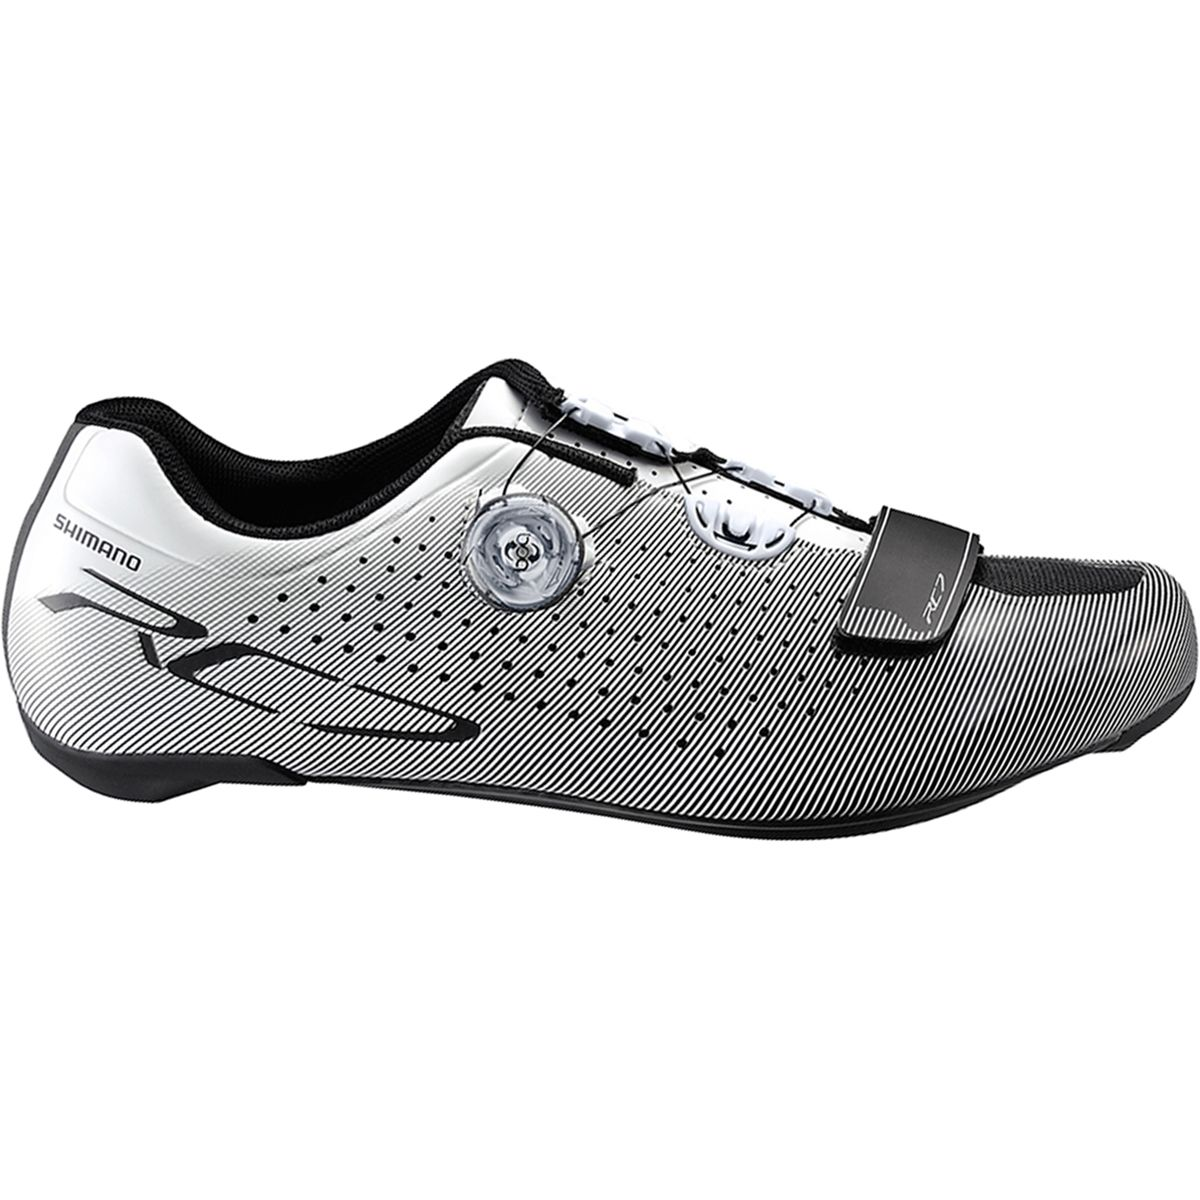 Best Cycling Road Shoes For Wide Feet